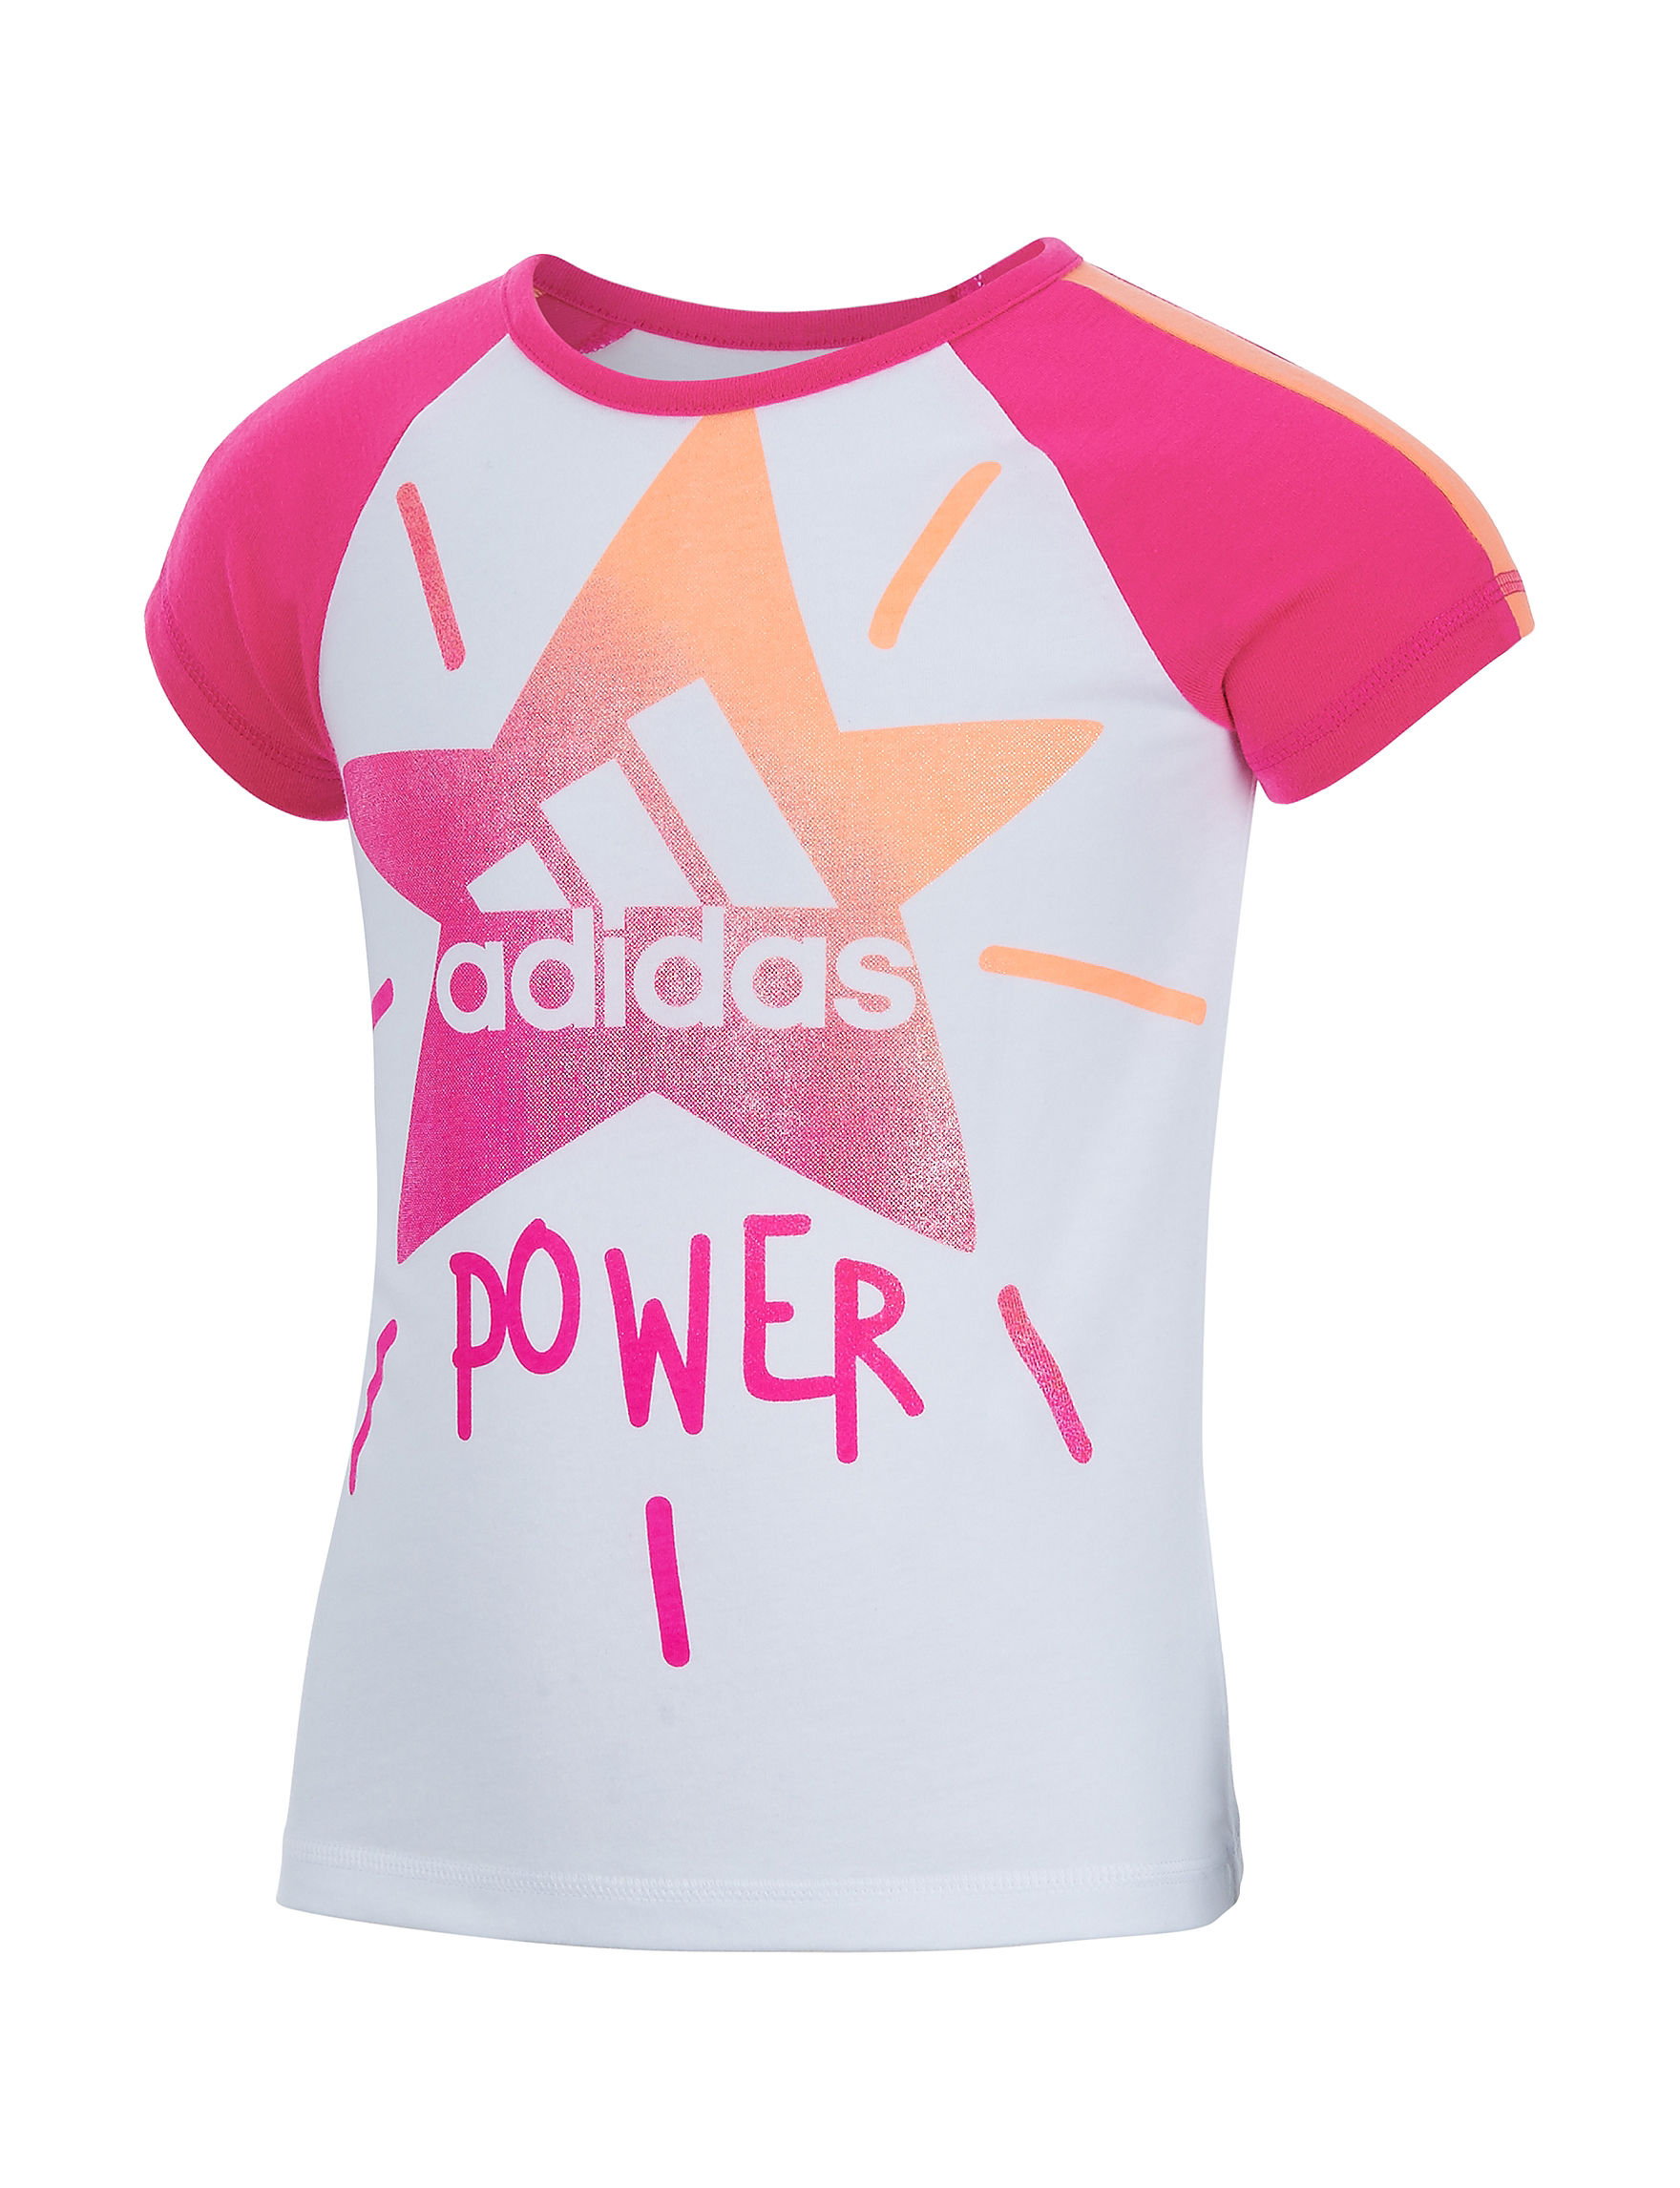 Adidas White / Pink Tees & Tanks